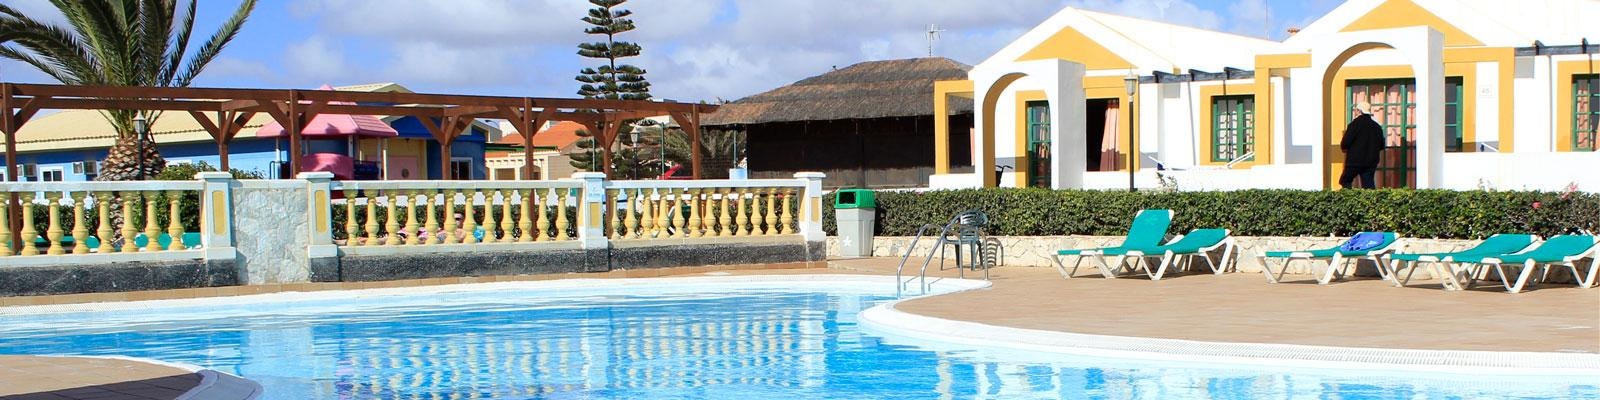 All Inclusive Fuerteventura - Budget Holiday